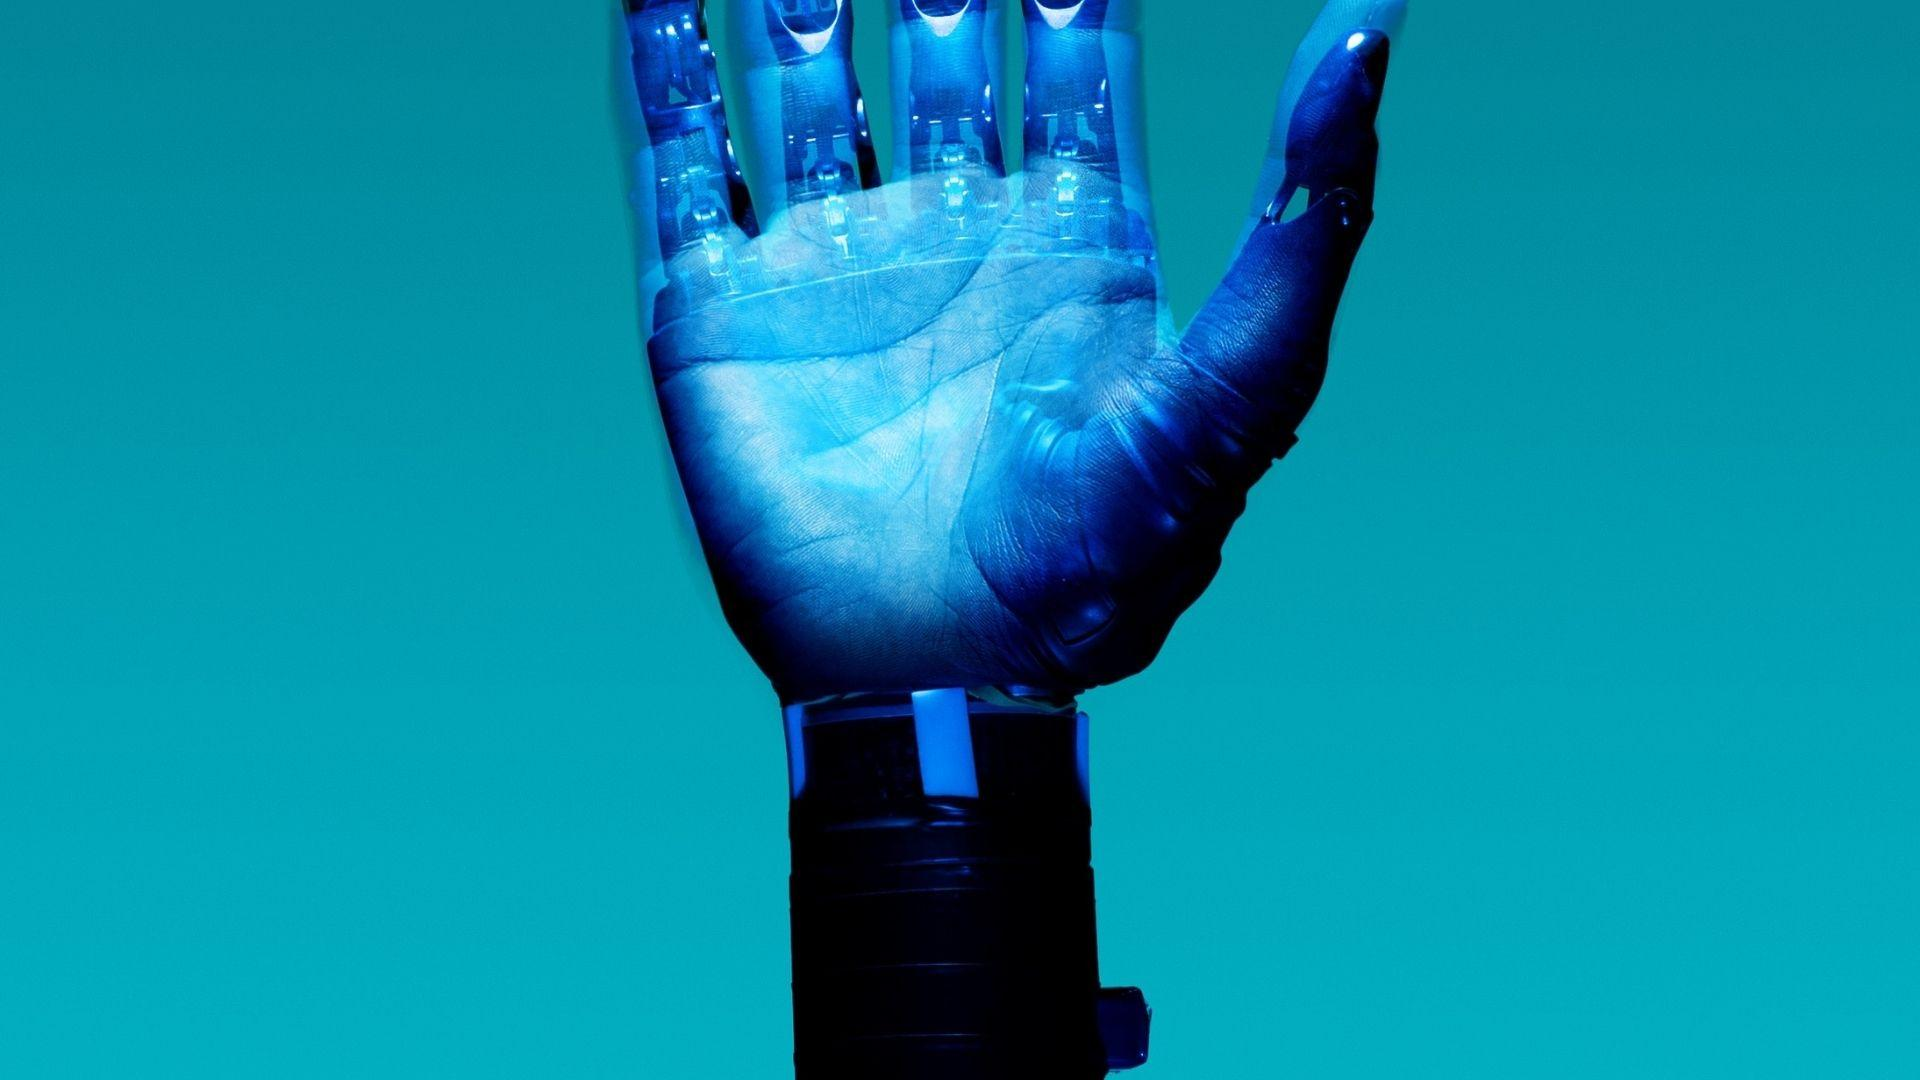 How automation can change the future? What are the advantages and disadvantages of automation?